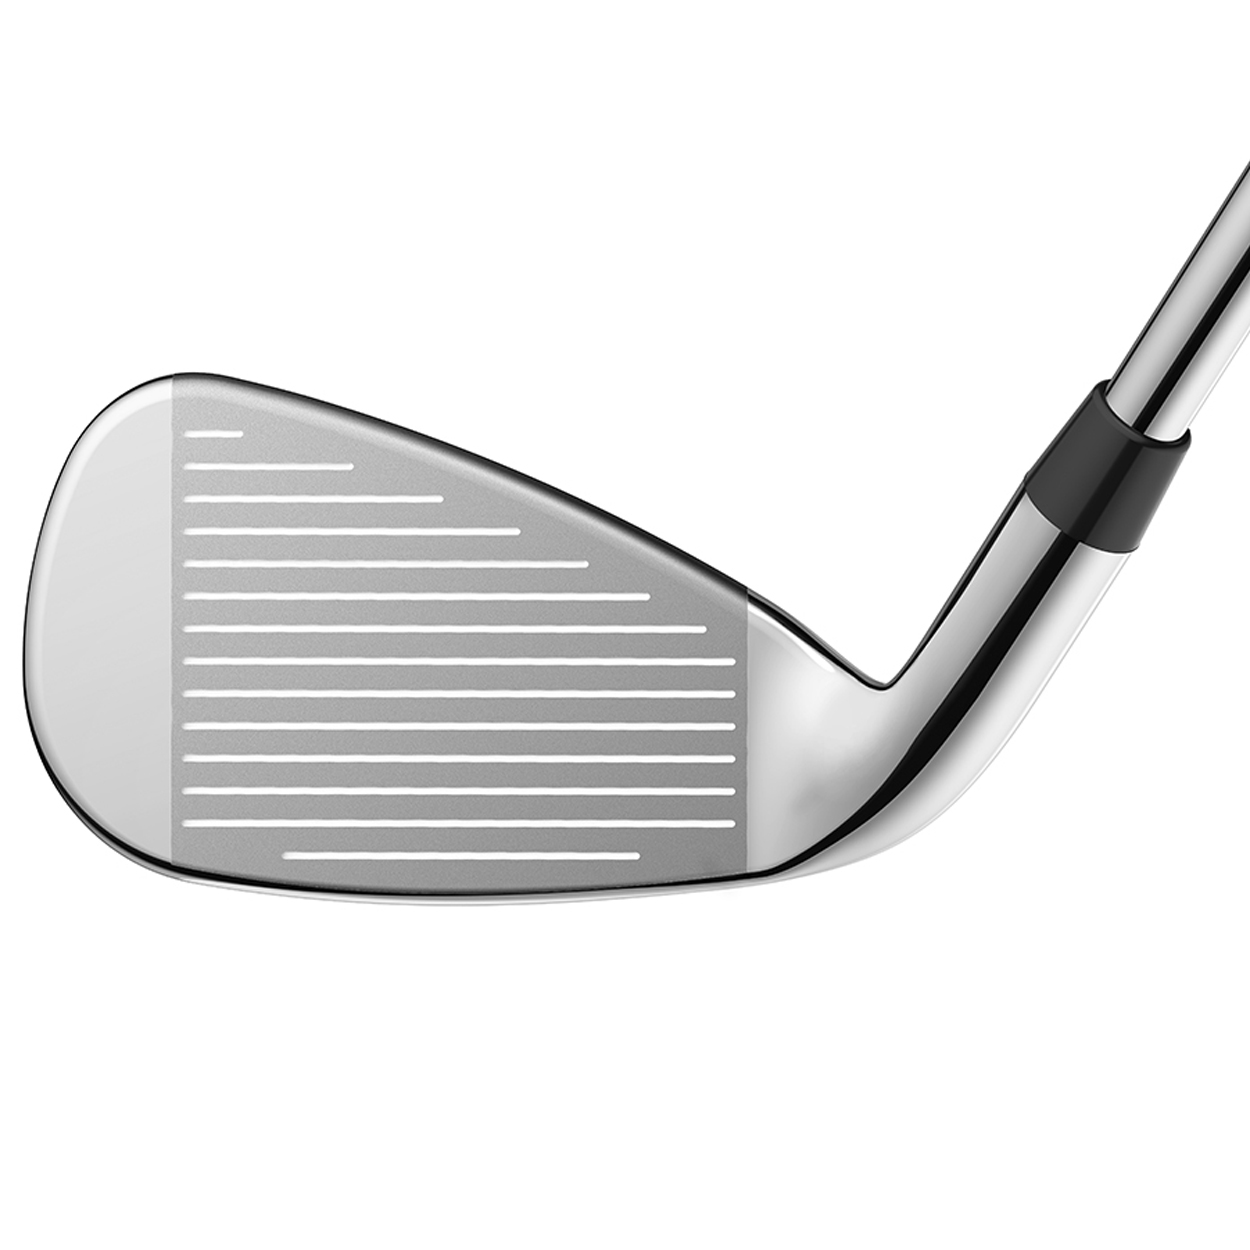 https://d3d71ba2asa5oz.cloudfront.net/22001014/images/cobafxlis-r-add-1216.jpg